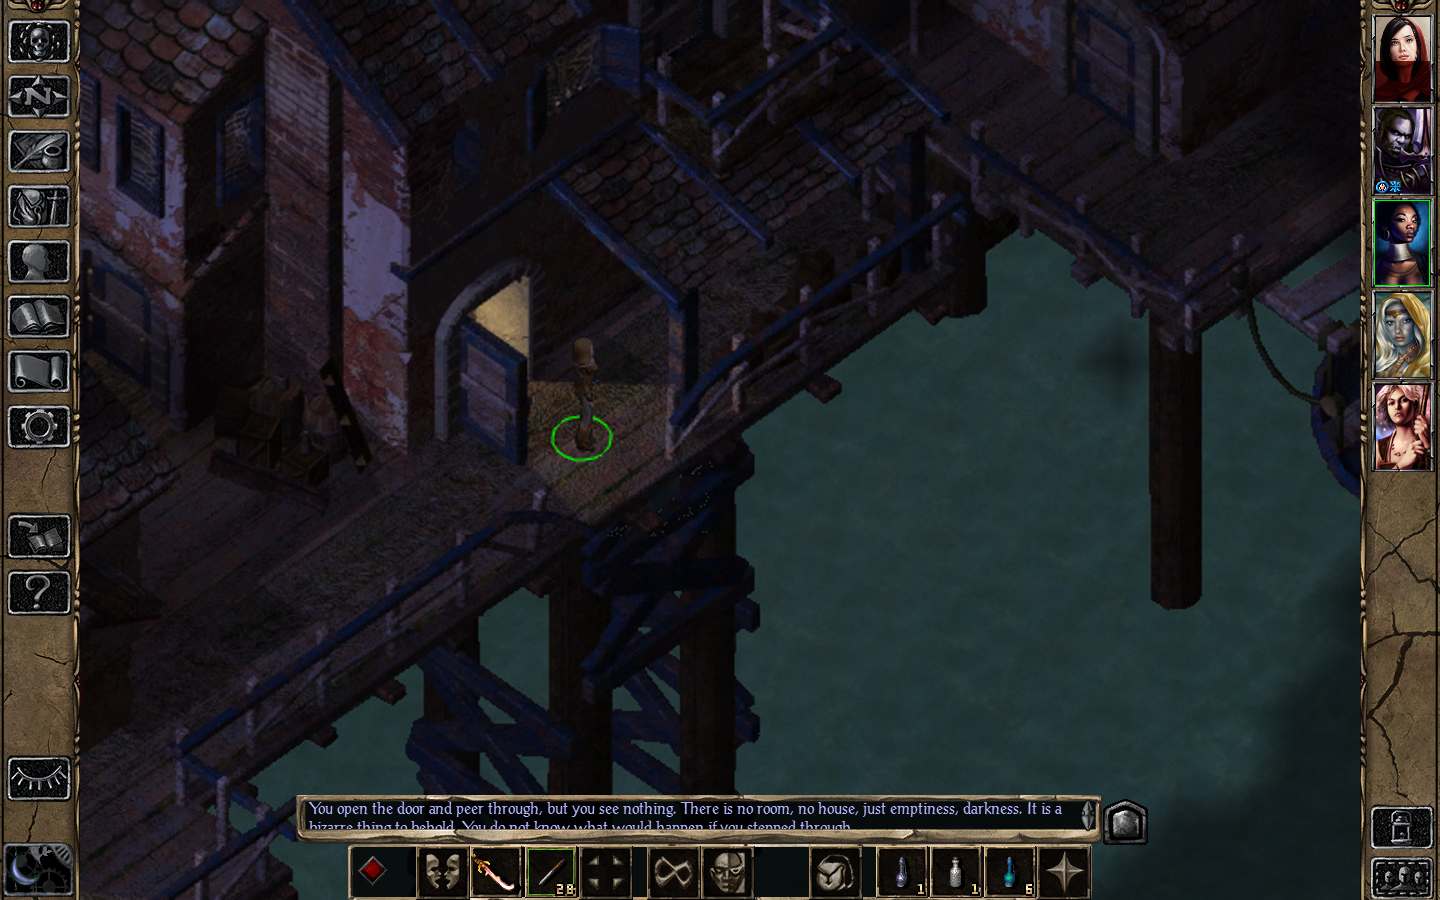 DUPE] - Graphical glitches BG2:EE — Beamdog Forums